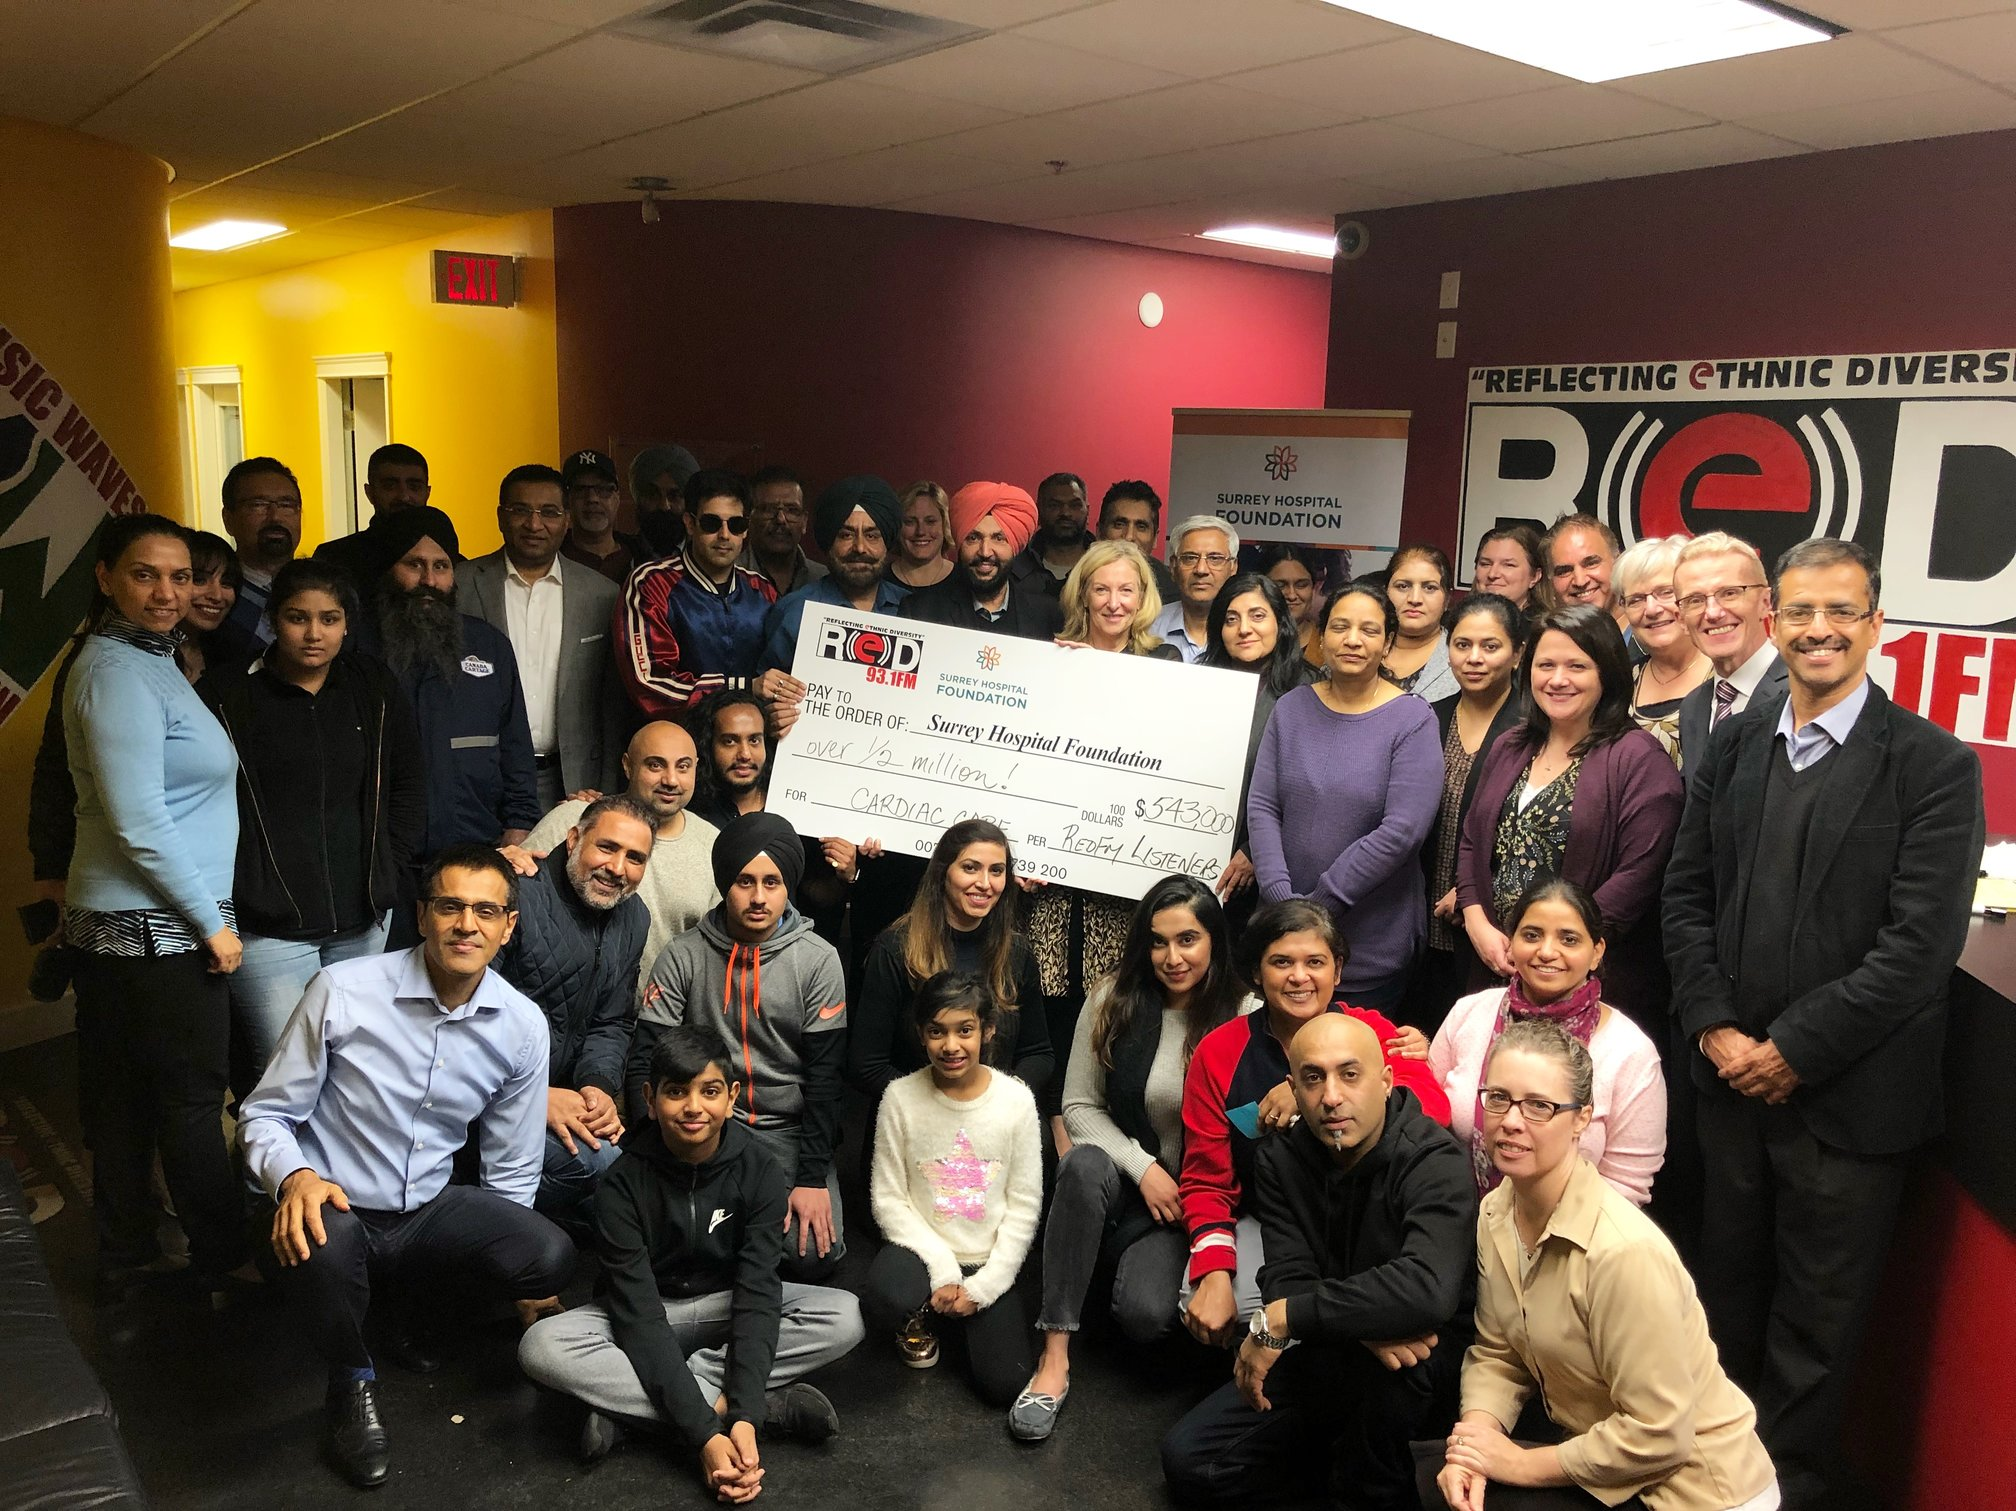 More prone to heart disease, South Asian community raises $543k for cardiac care